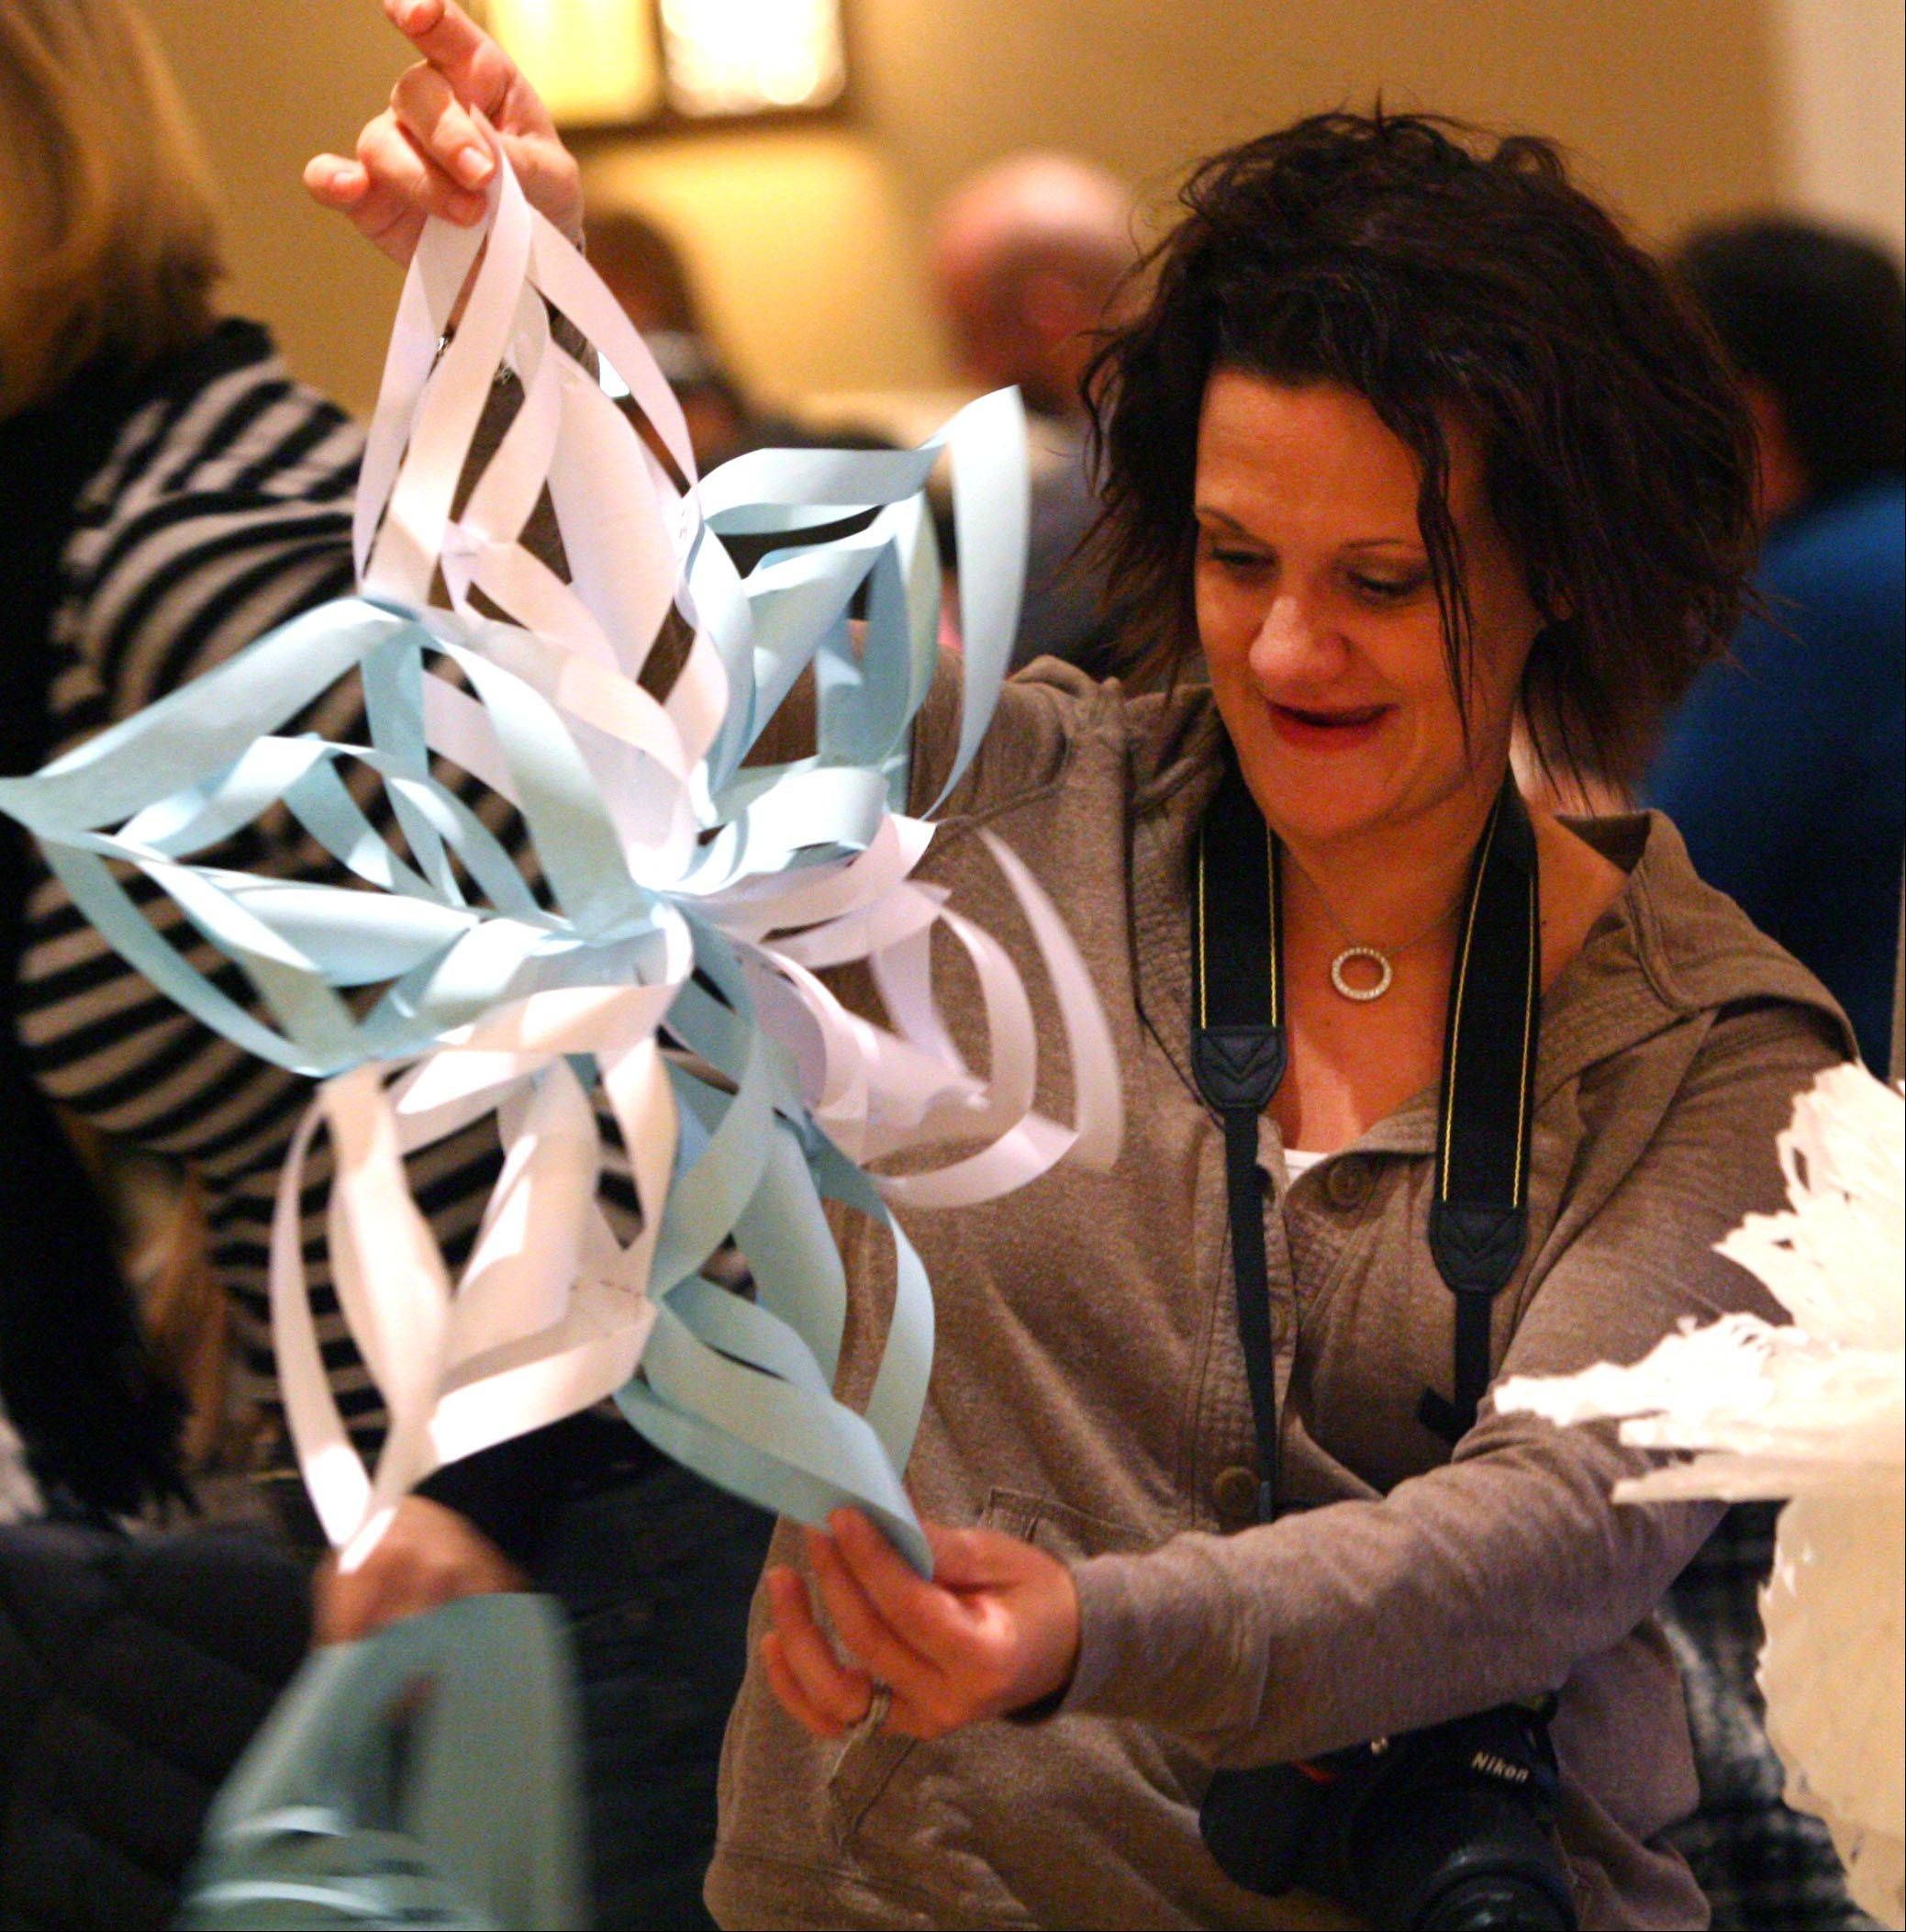 Organizer Lora Rampino, of Lake Zurich, holds up a 3-D snowflake made by a volunteer as people banded together to create snowflakes for the kids of Sandy Hook Elementary School in Connecticut. About 200 people showed up to Concord Banquets in Lake Zurich for the snowflake making effort. An estimated 5000 snowflakes were made.